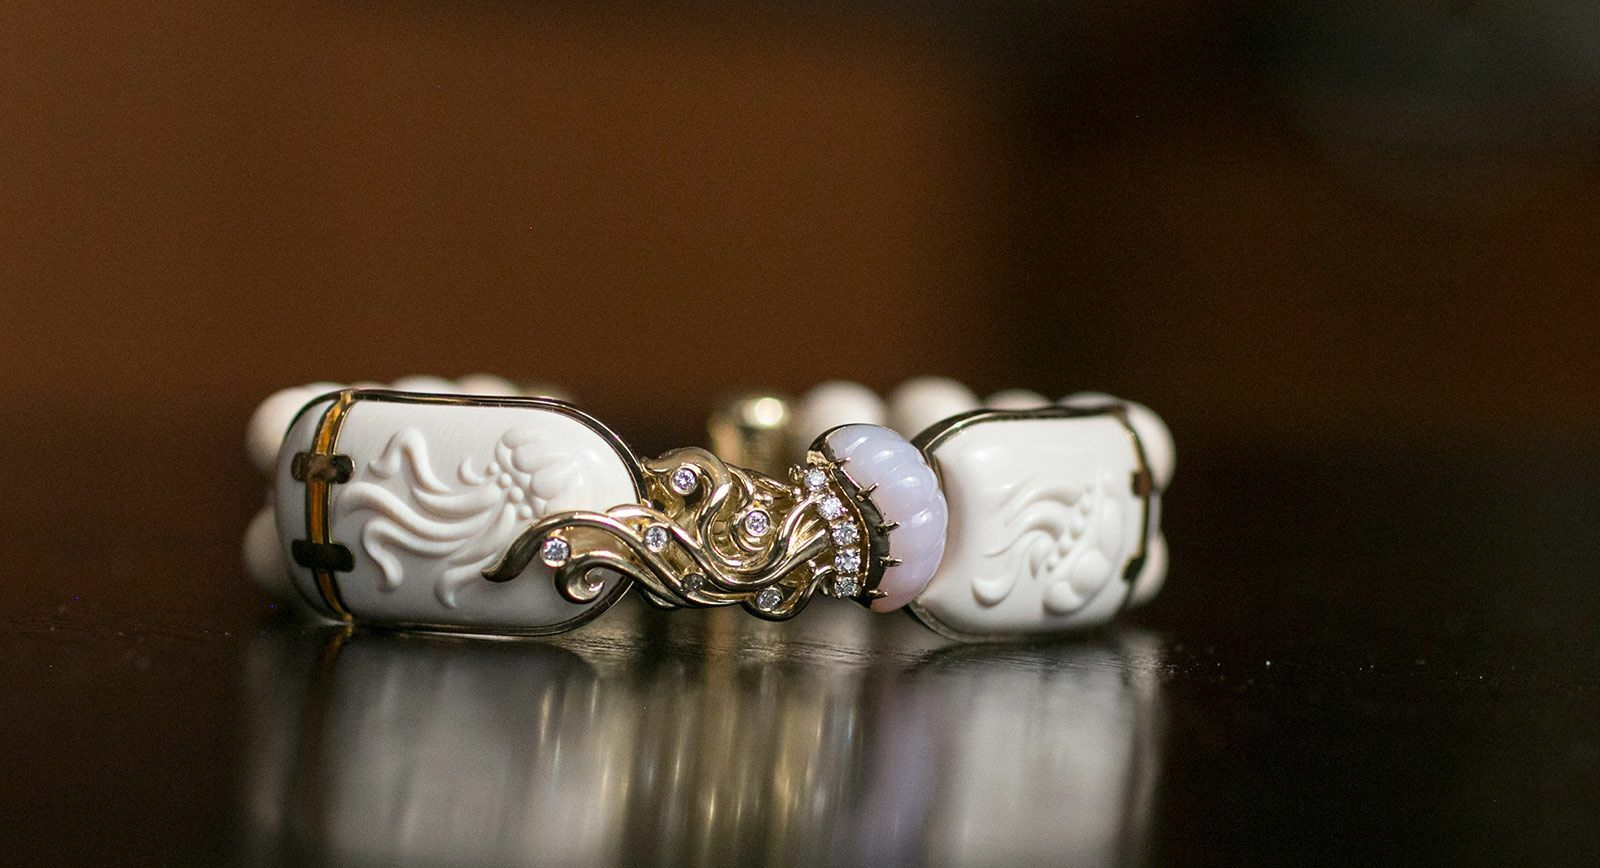 Notivory bracelet for ICHIEN with diamonds, chalcedony, mammoth tusk and yellow gold